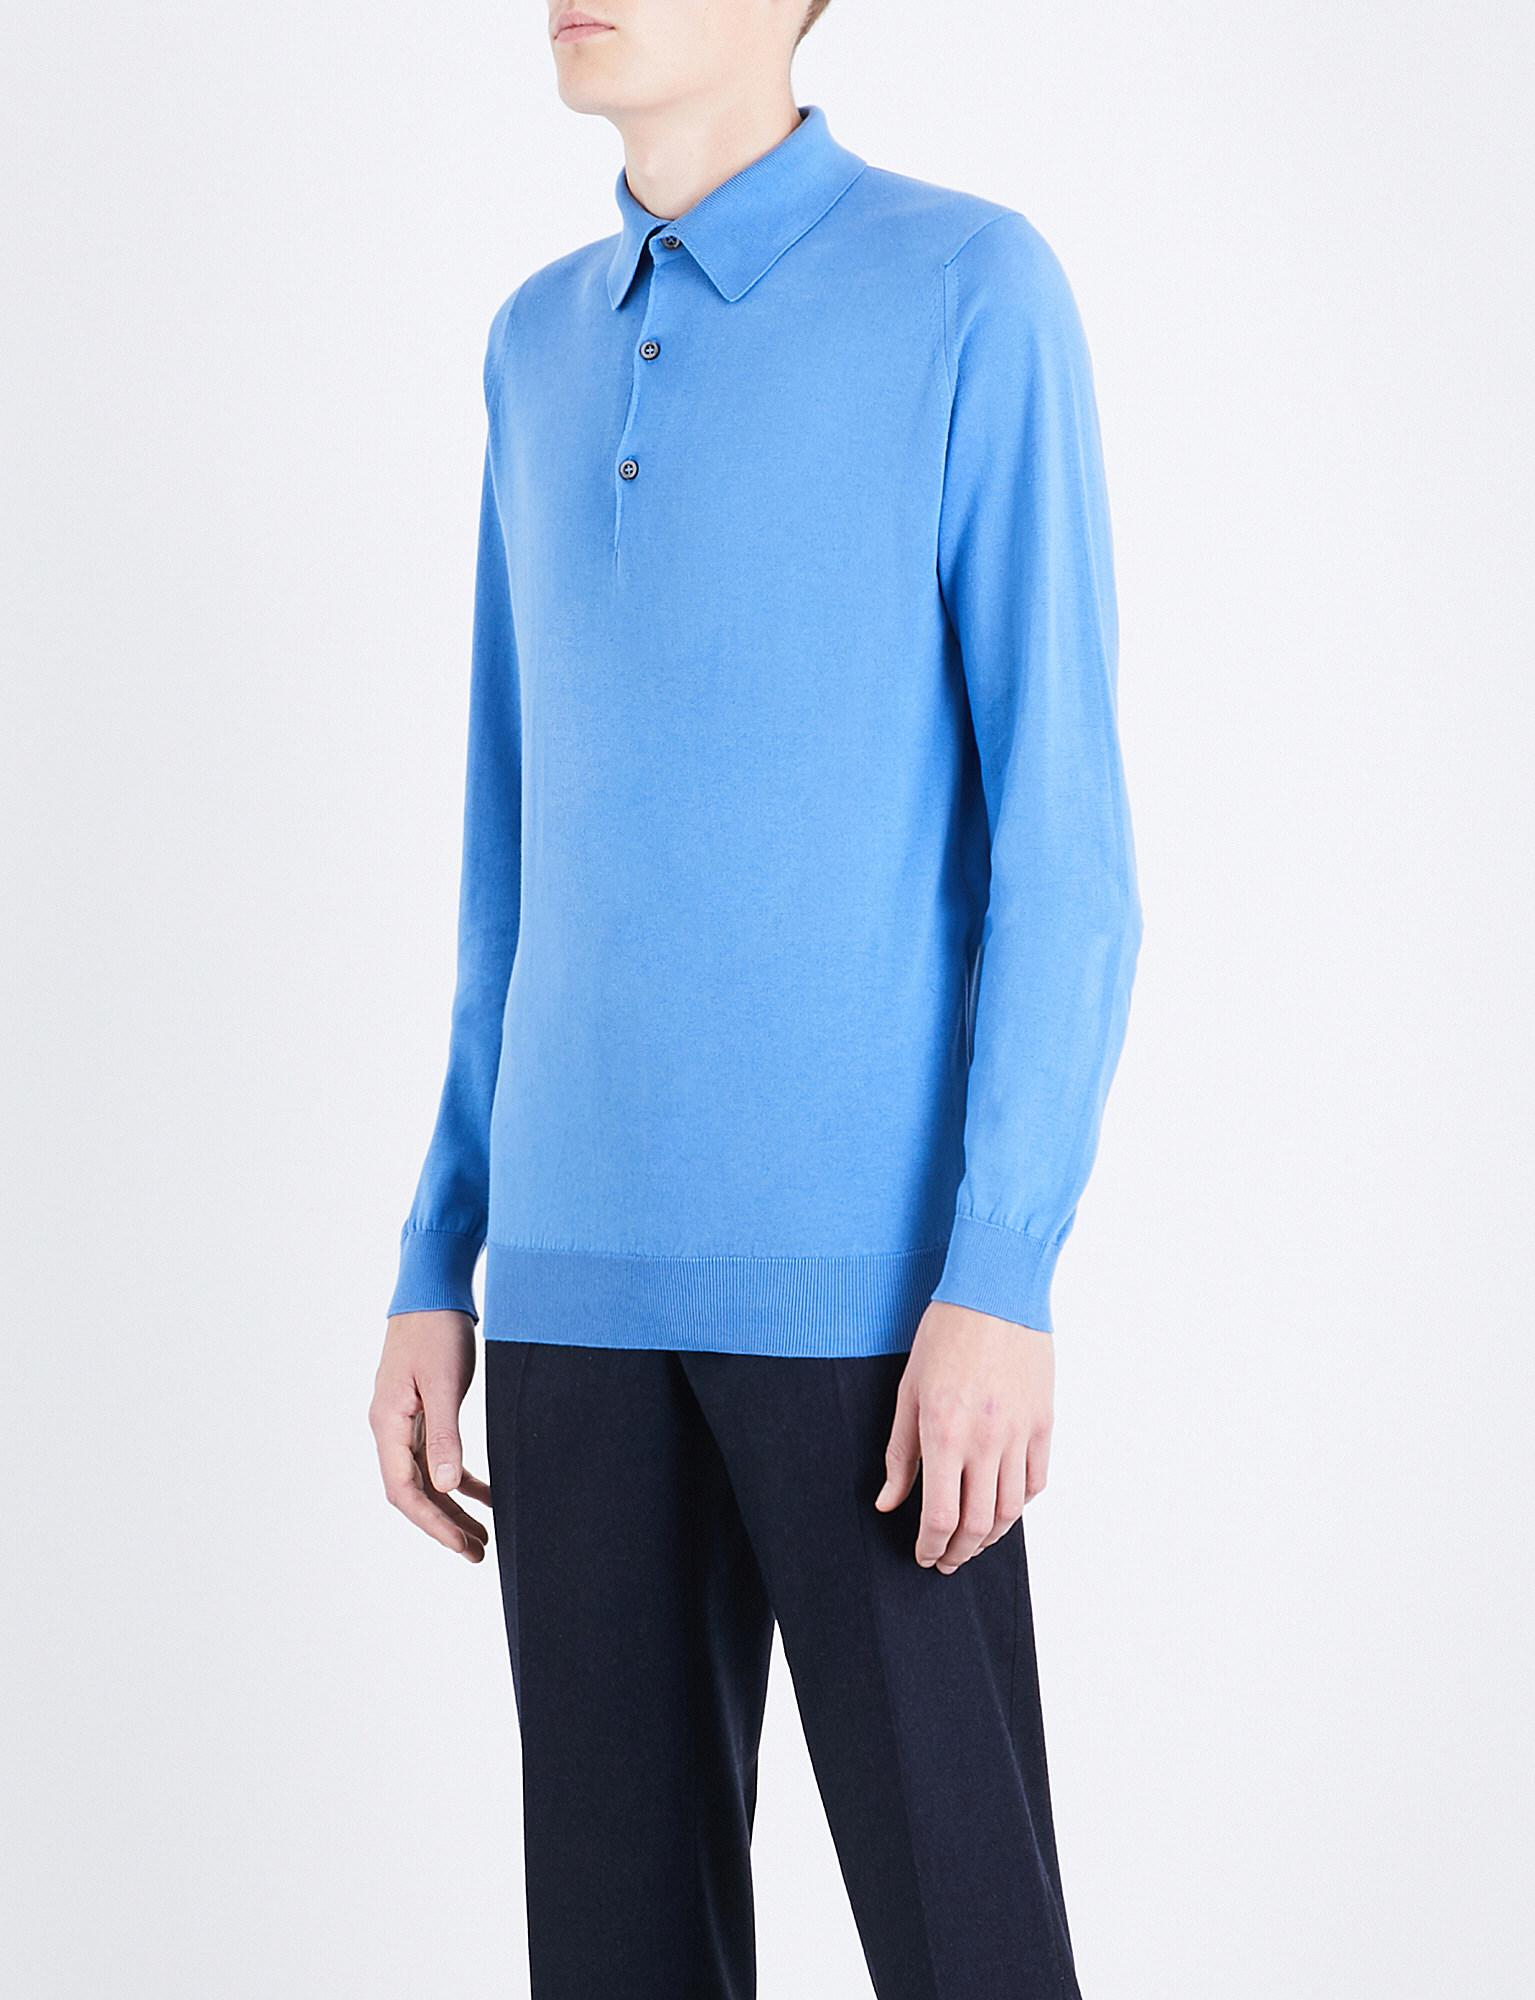 2d1f94d1 Lyst - John Smedley Bradwell Knitted Polo Jumper in Blue for Men